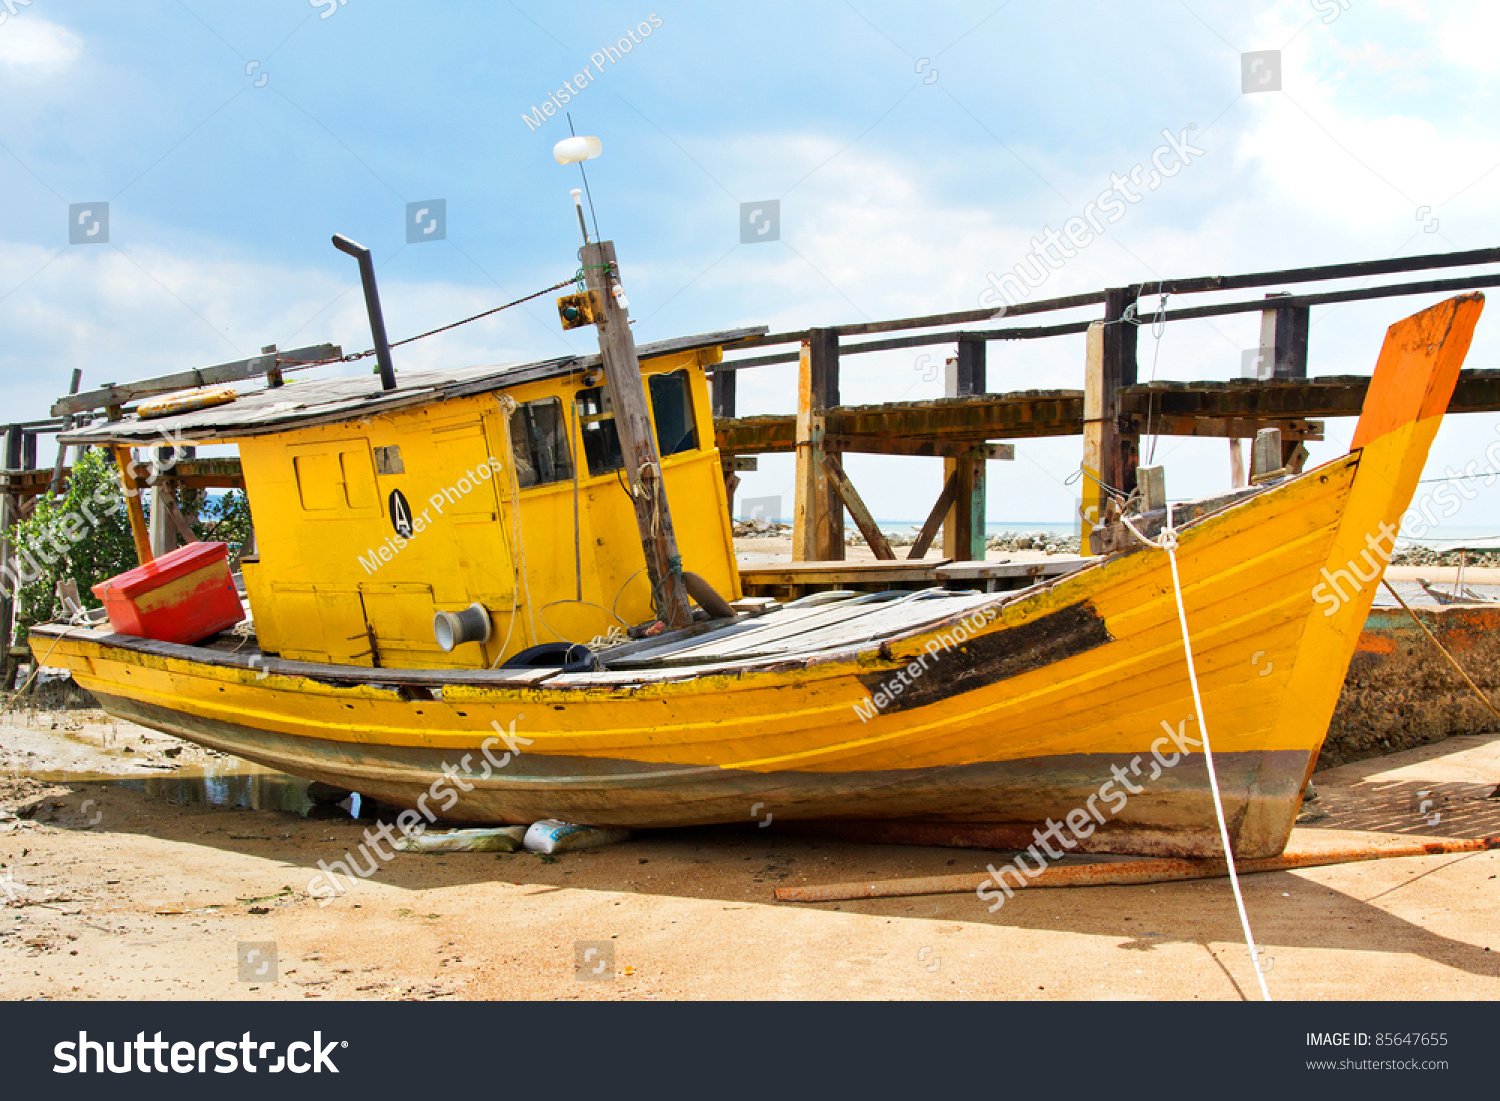 Derelict fishing boat malaysia stock photo 85647655 for Free fishing boats